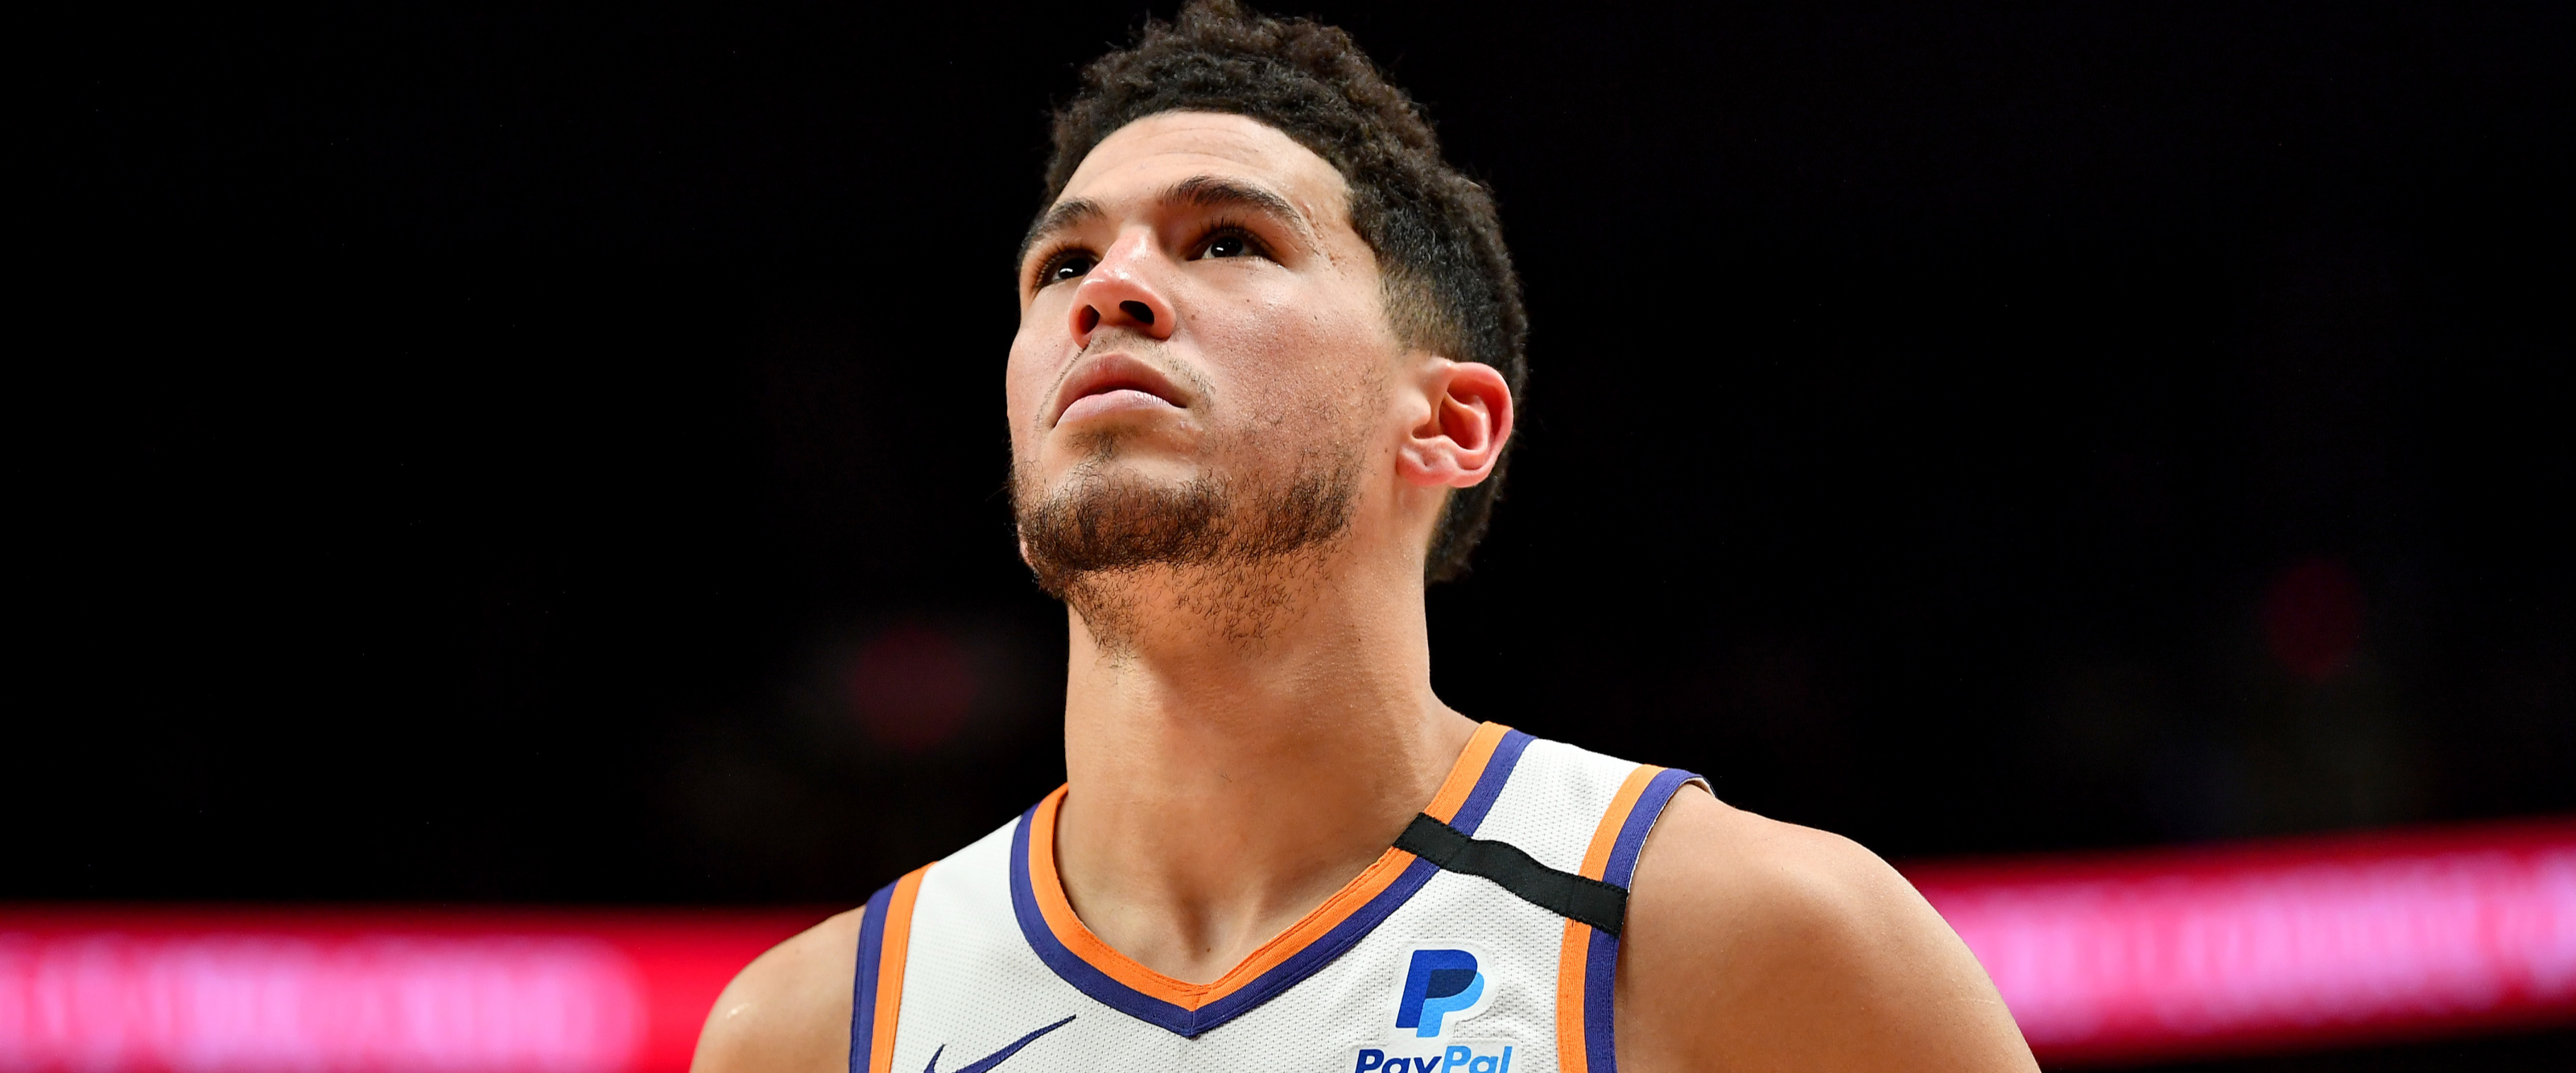 NBA World Reacts To Devin Booker Being Snubbed